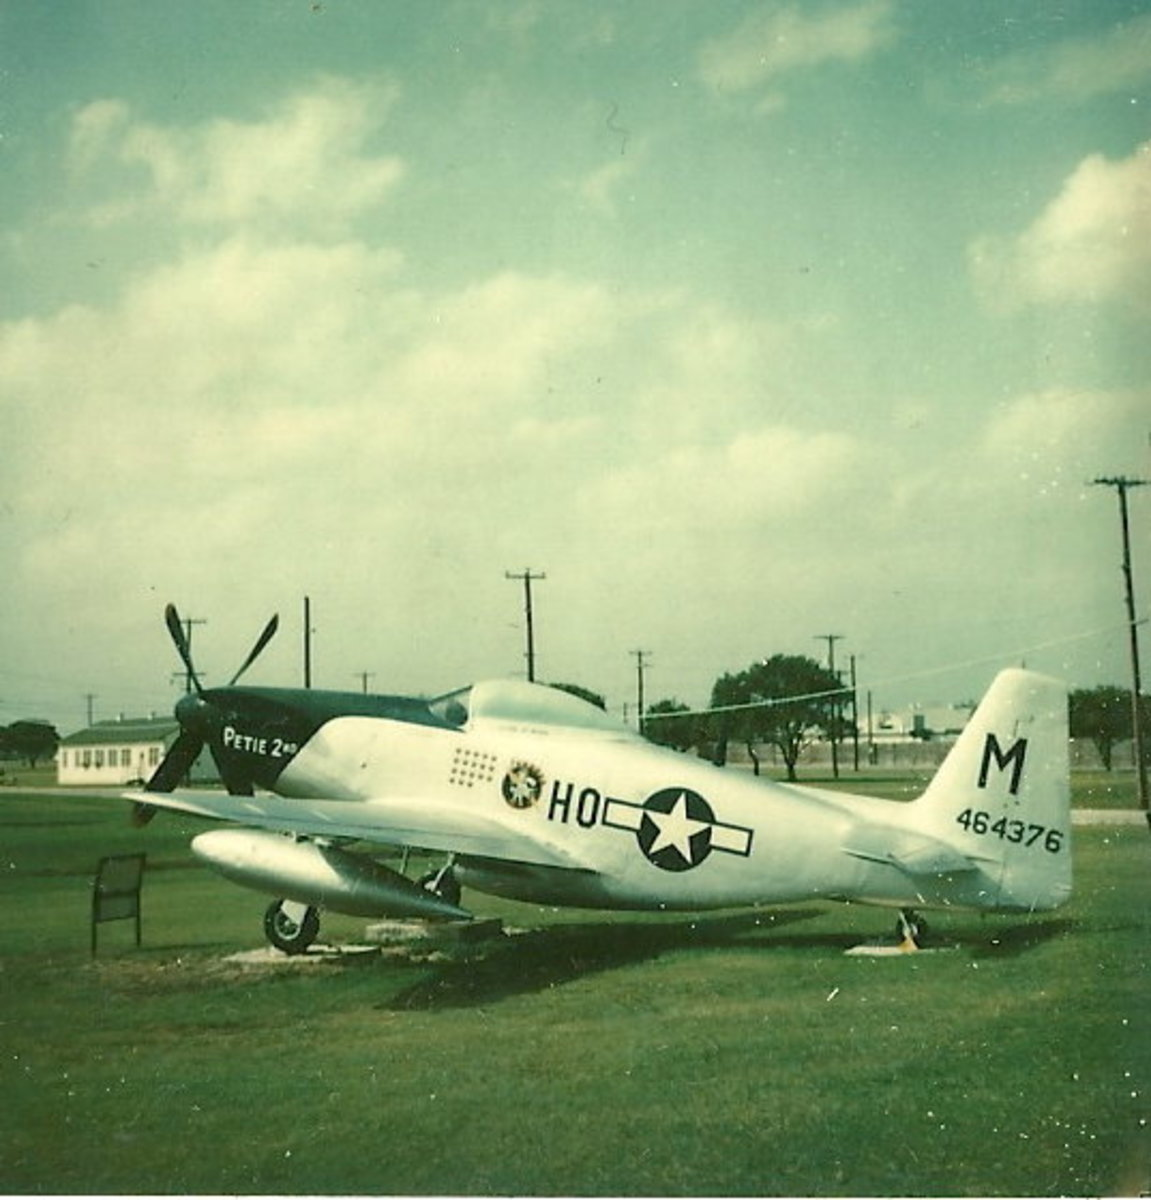 A P-51 painted as then Lt. Col. John C. Meyer's aircraft Petie 2nd.